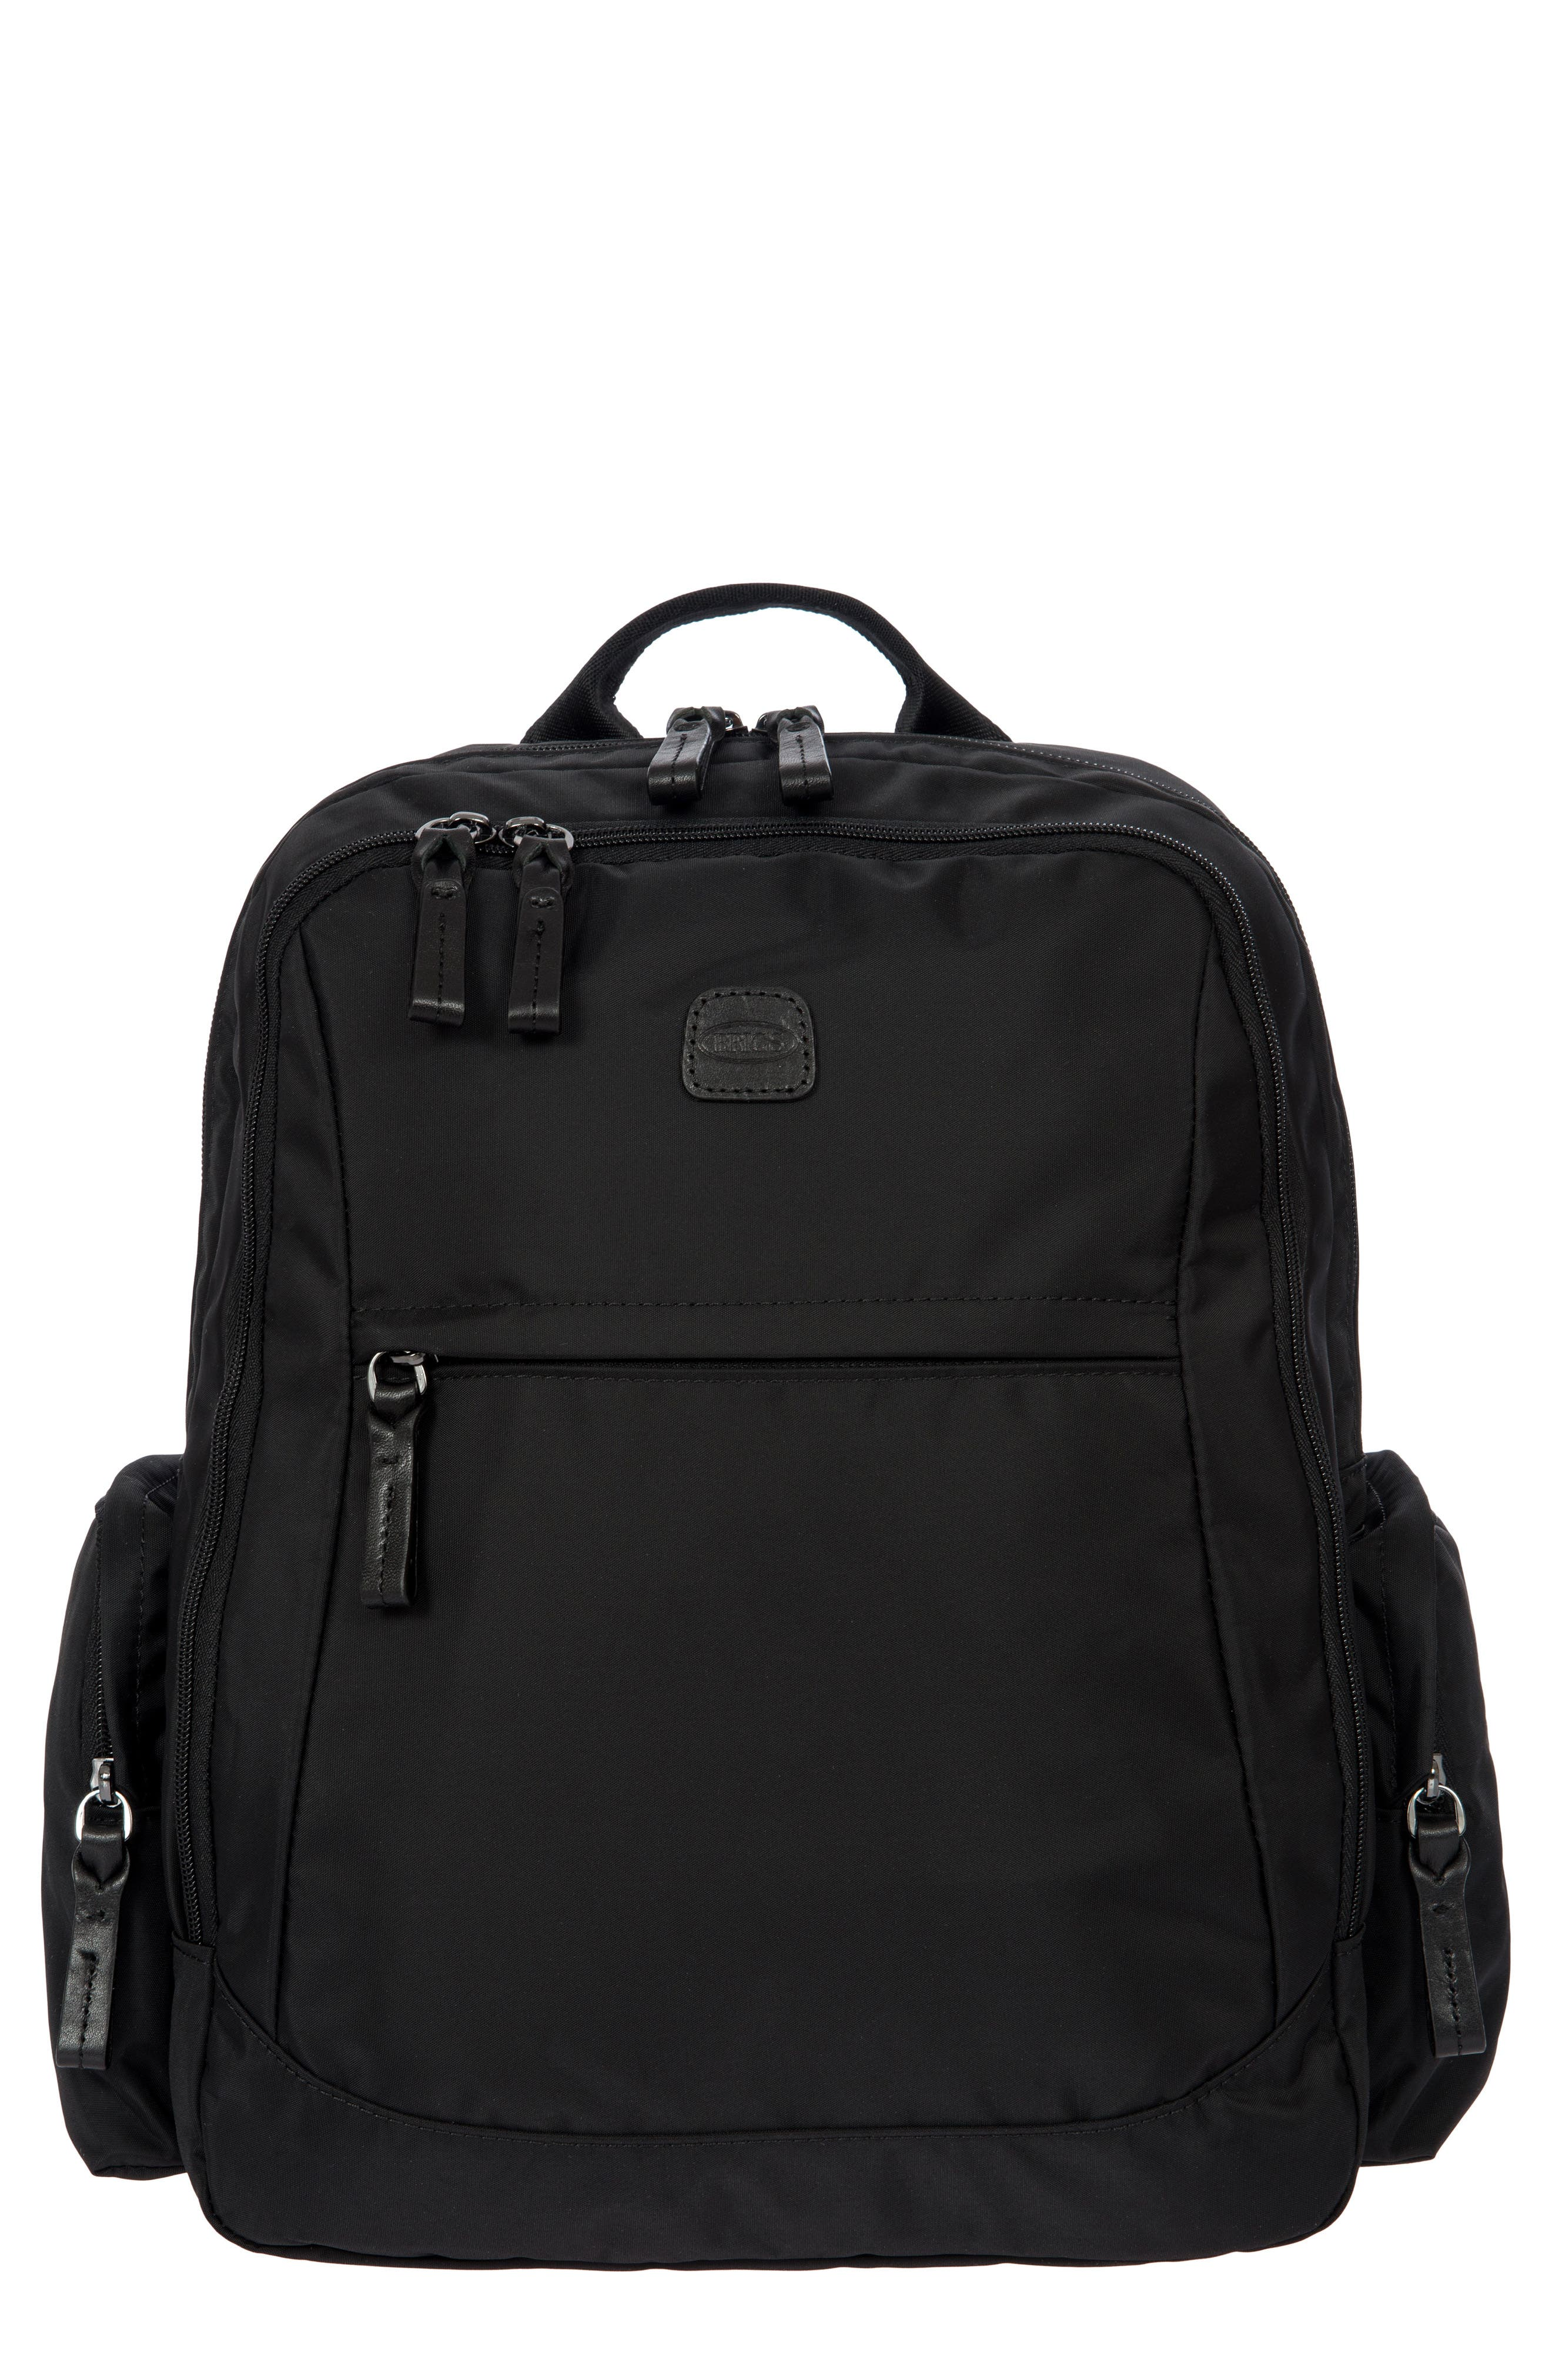 X-Travel Nomad Backpack,                         Main,                         color, 001